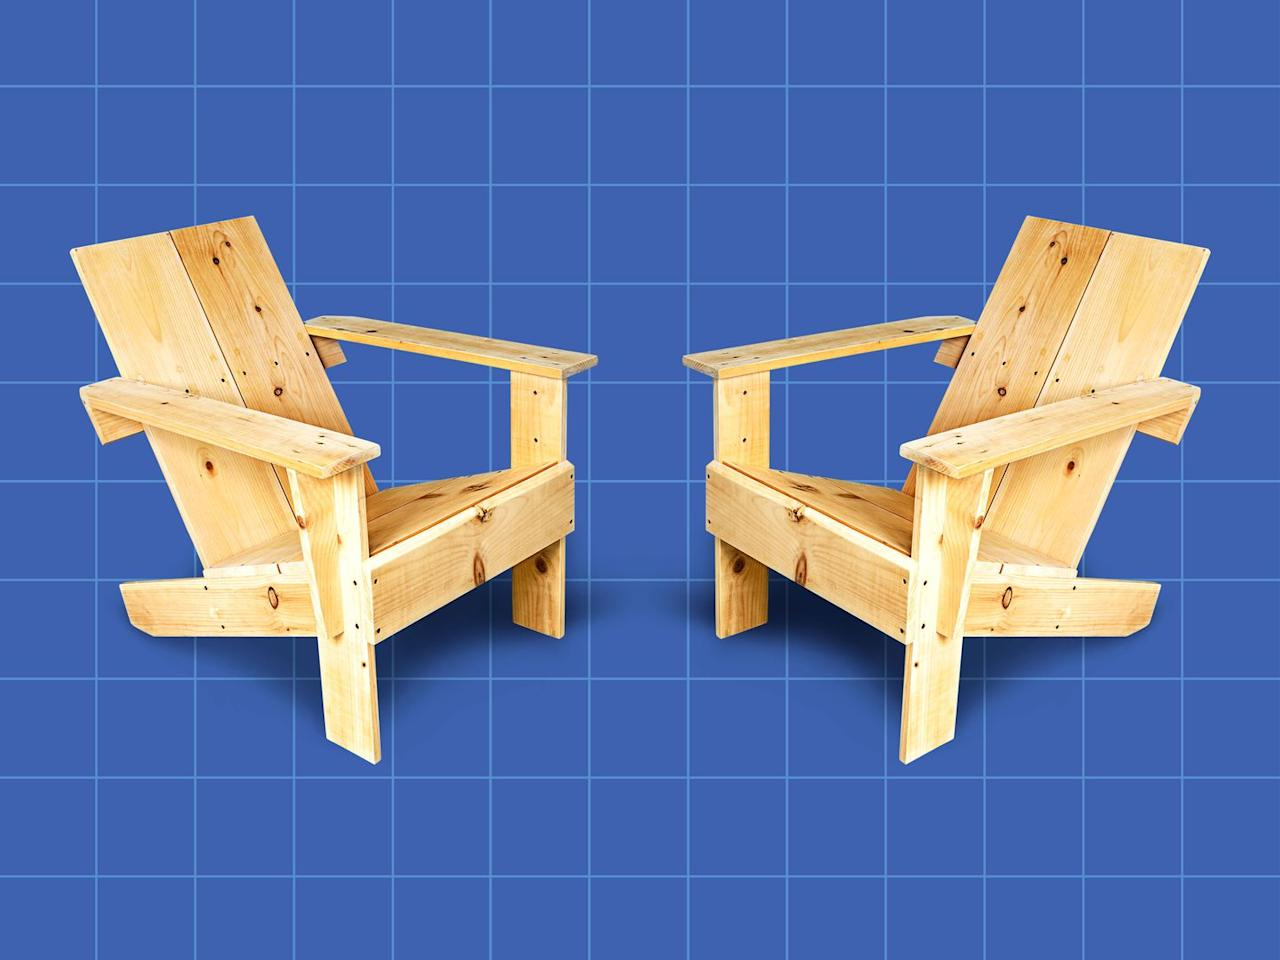 """<p>The backyard is an ideal place for relaxation and reflection, and for that you need a good, comfortable chair. But why buy one when you can build one with little more than a <a href=""""https://www.popularmechanics.com/about/a28319503/best-circular-saws/"""" target=""""_blank"""">circular saw</a> and <a href=""""https://www.popularmechanics.com/about/a27923491/best-cordless-drills/"""" target=""""_blank"""">cordless drill</a>? This backyard lounger isn't just easy and affordable to build; it's also both rustic looking and super comfy. </p><p>This lazy-boy lawn lounger is loosely based on a traditional 1903 Westport plank chair, which was the predecessor to the classic Adirondack chair. Our version, however, is much quicker and simpler to build. Plus, you can construct this chair from just two 10-foot-long pine 1x10s, and it shouldn't take much more than a couple of hours<br></p><p><a class=""""body-btn-link"""" href=""""https://www.popularmechanics.com/home/how-to-plans/how-to/g1608/how-to-make-a-two-board-backyard-lounger/"""" target=""""_blank"""">How to Build a Backyard Lounger</a></p>"""